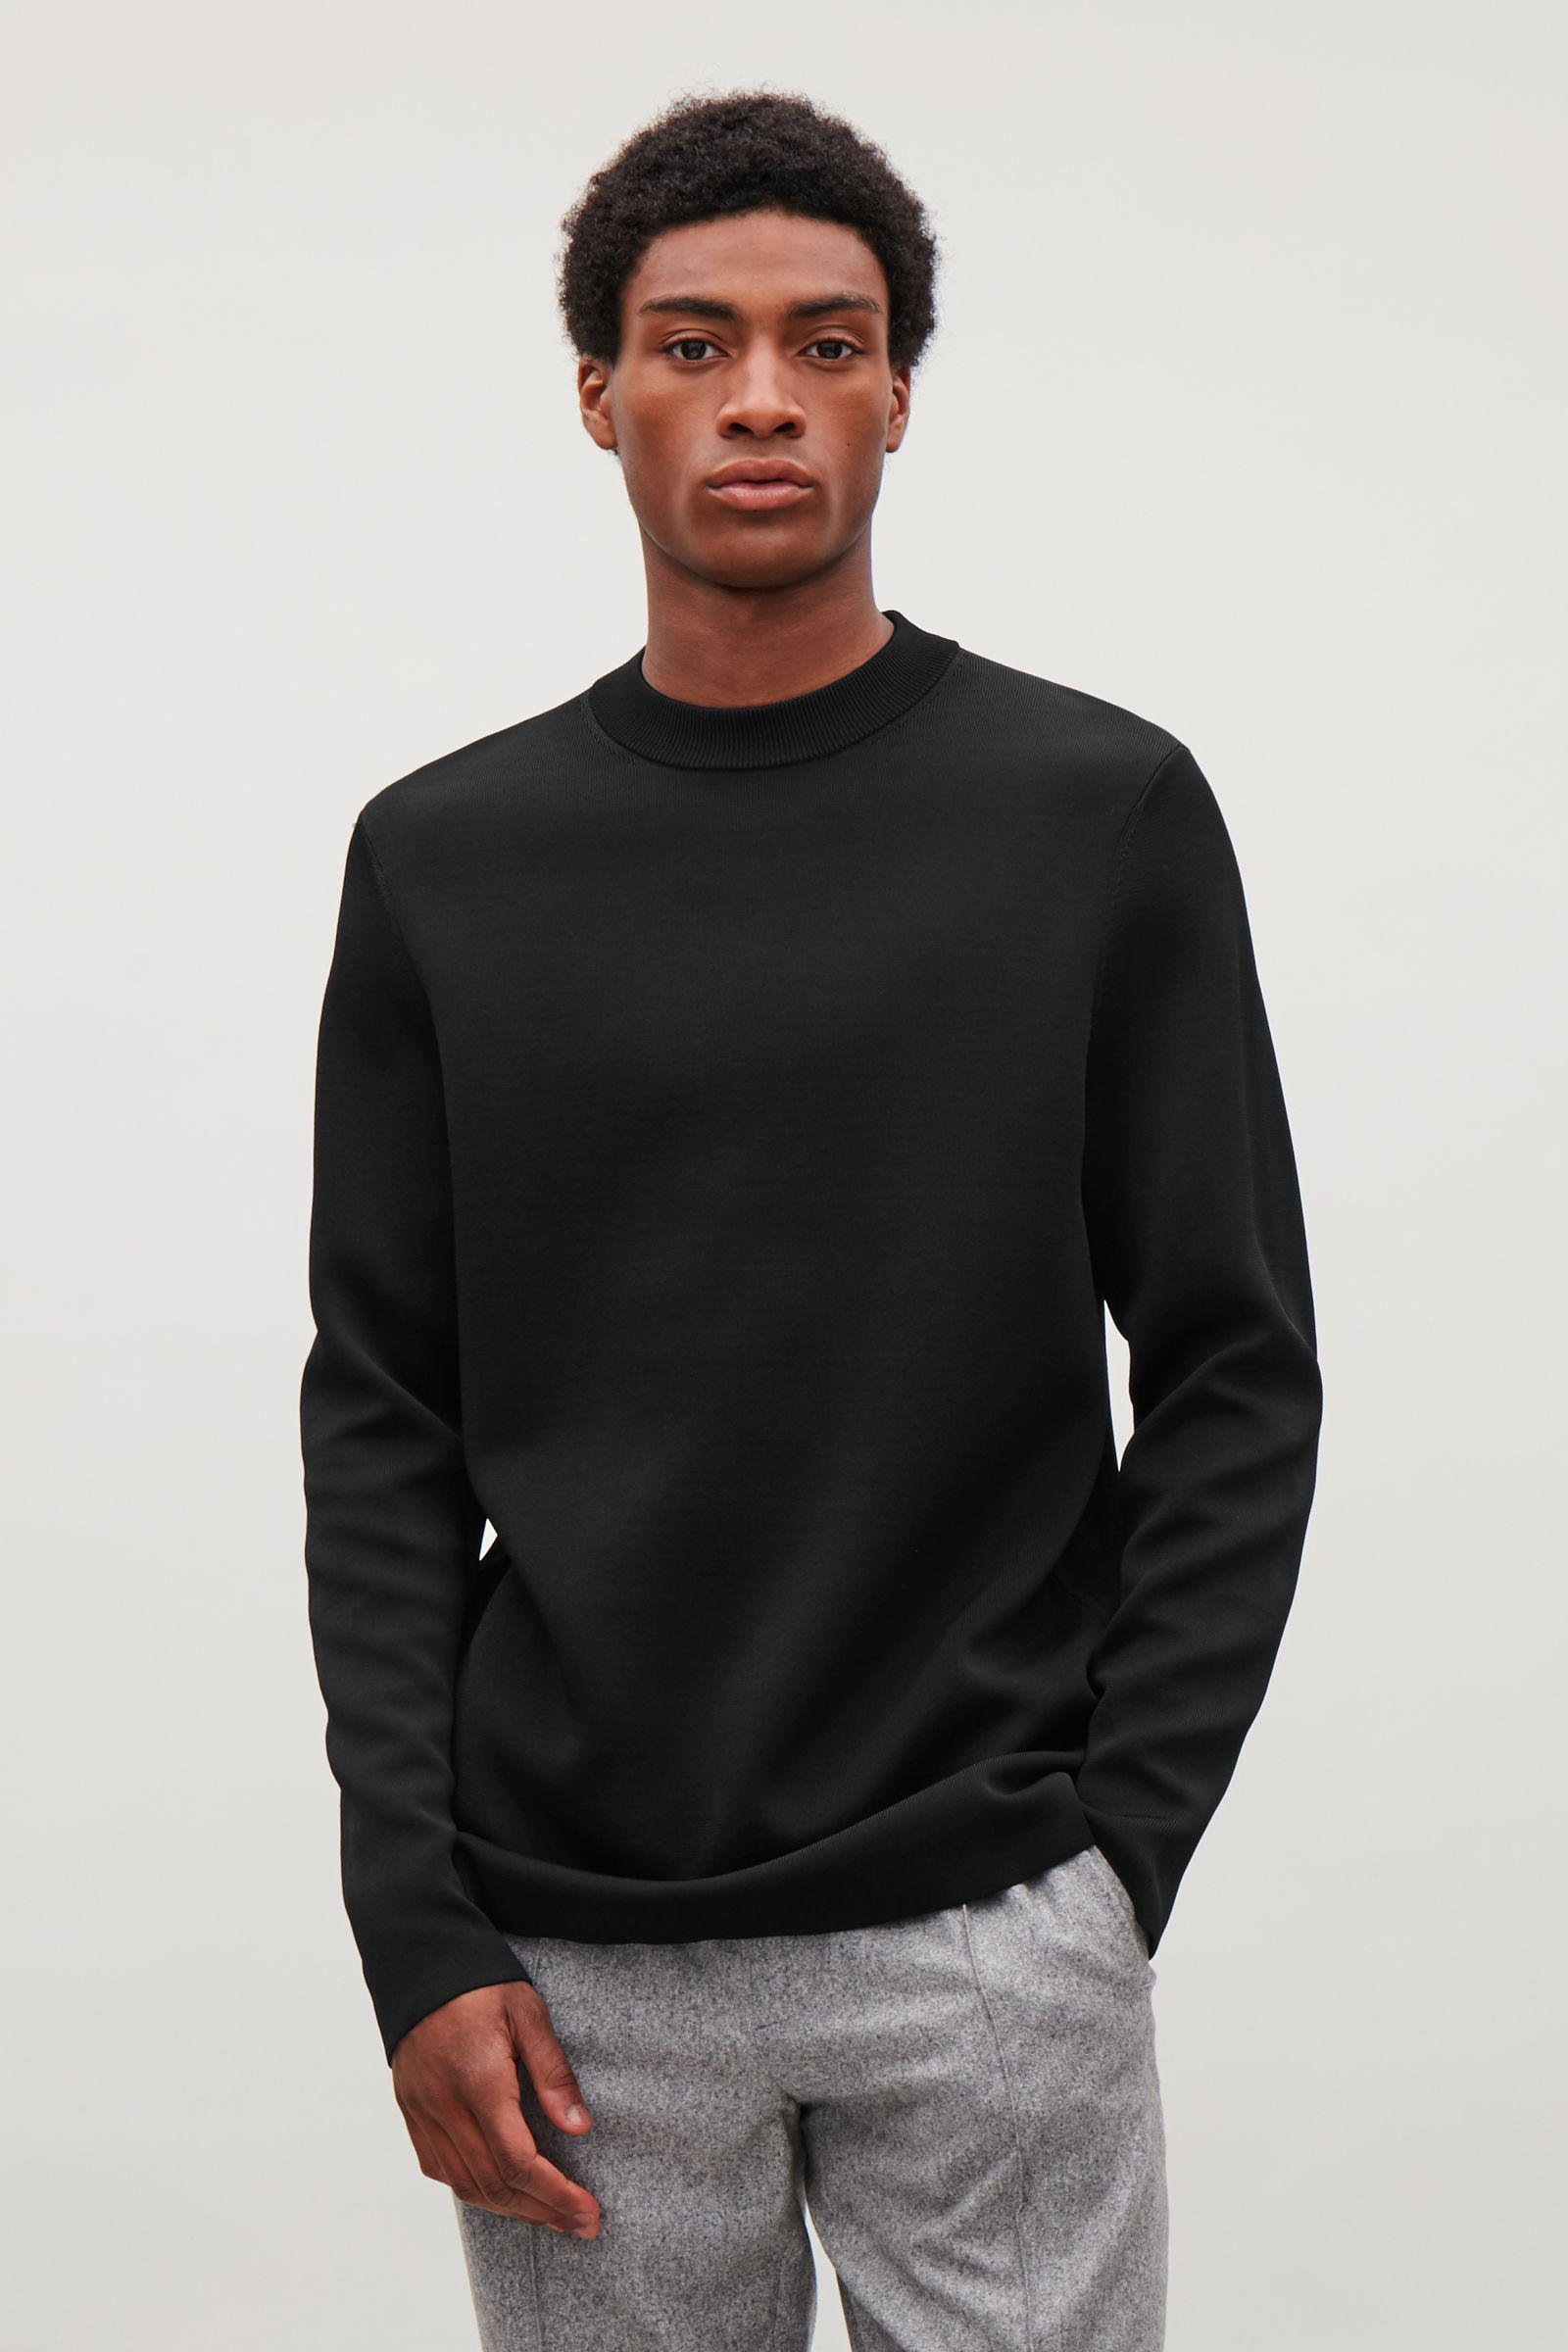 ebf82c15b244 COS Double-faced Jumper in Black for Men - Lyst